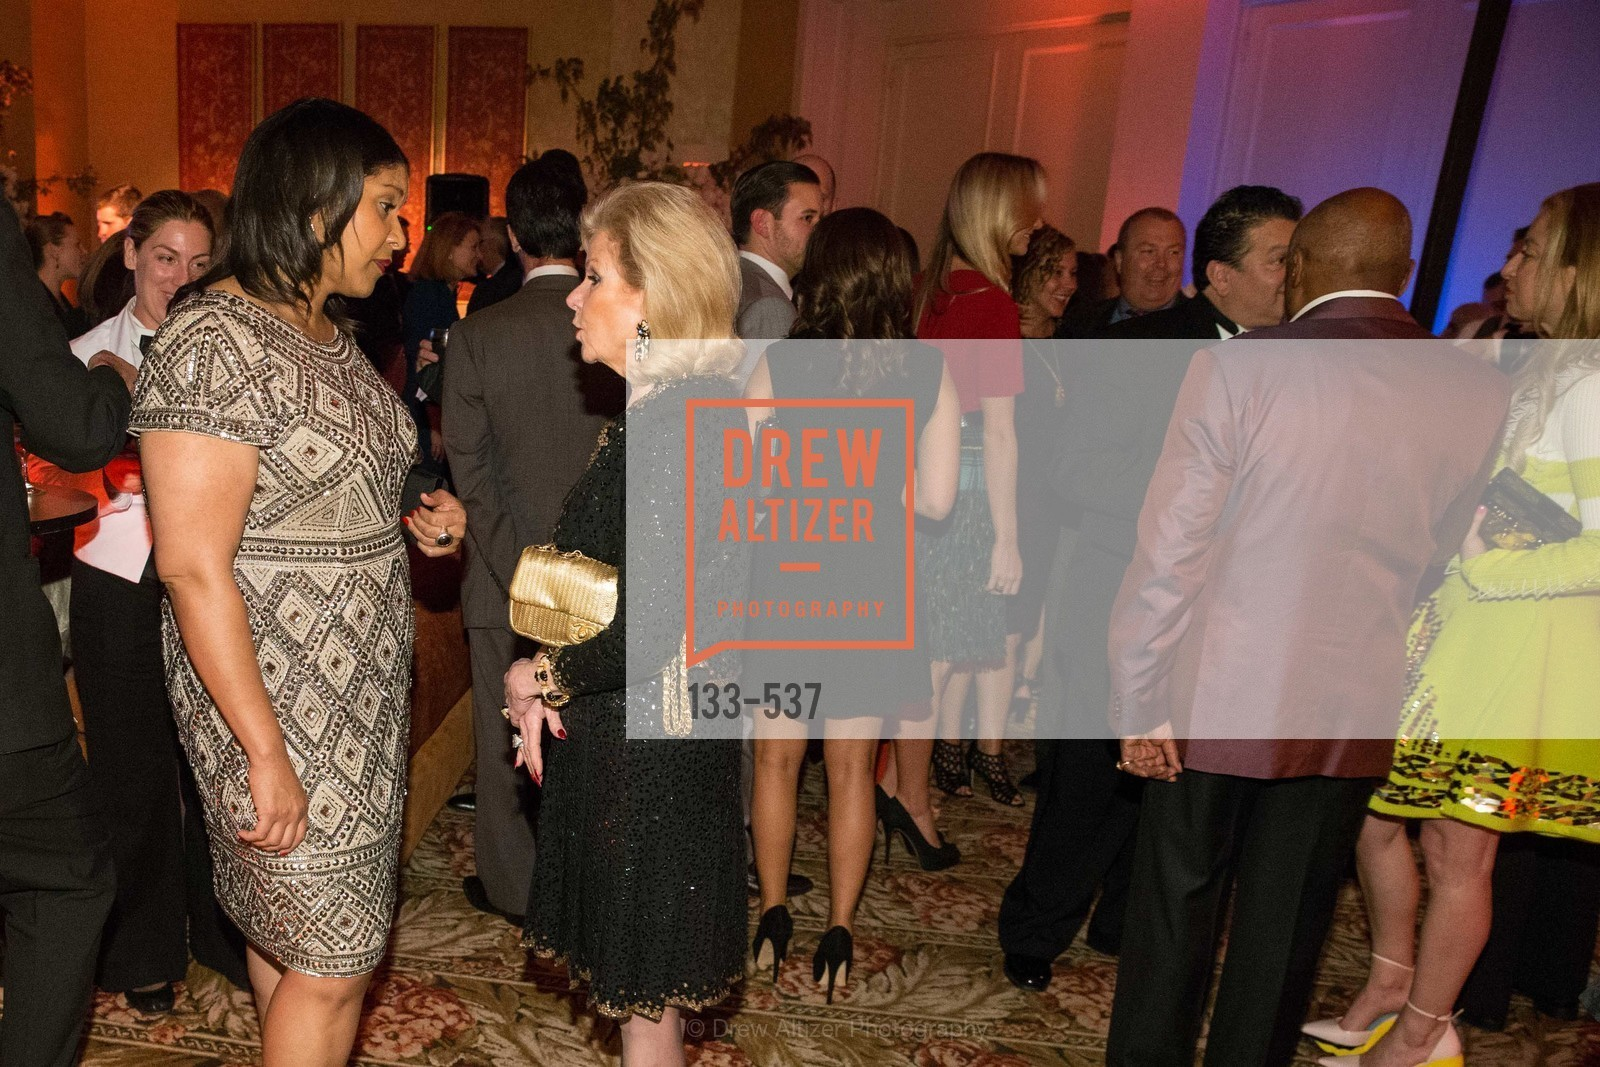 London Breed, Dede Wilsey, TOP OF THE MARK'S 75TH Anniversary Party, US, November 6th, 2014,Drew Altizer, Drew Altizer Photography, full-service agency, private events, San Francisco photographer, photographer california